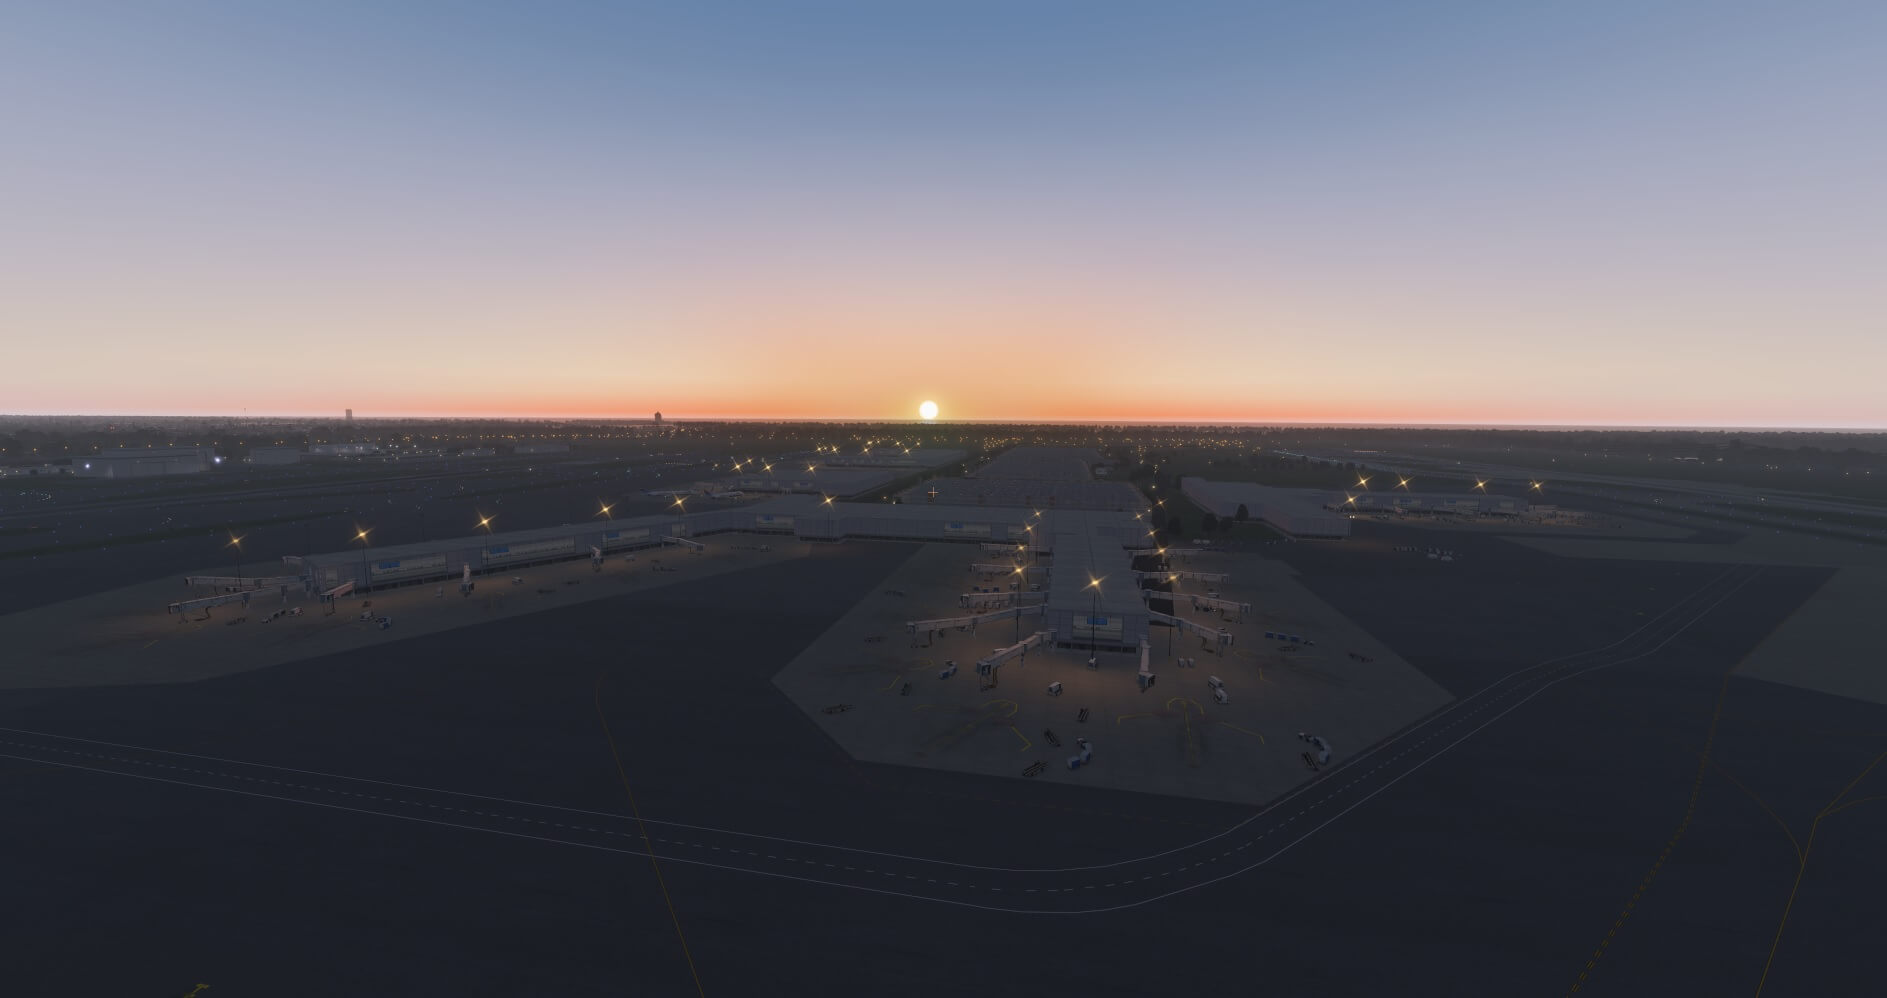 KFLL at sunset in X-Plane 11